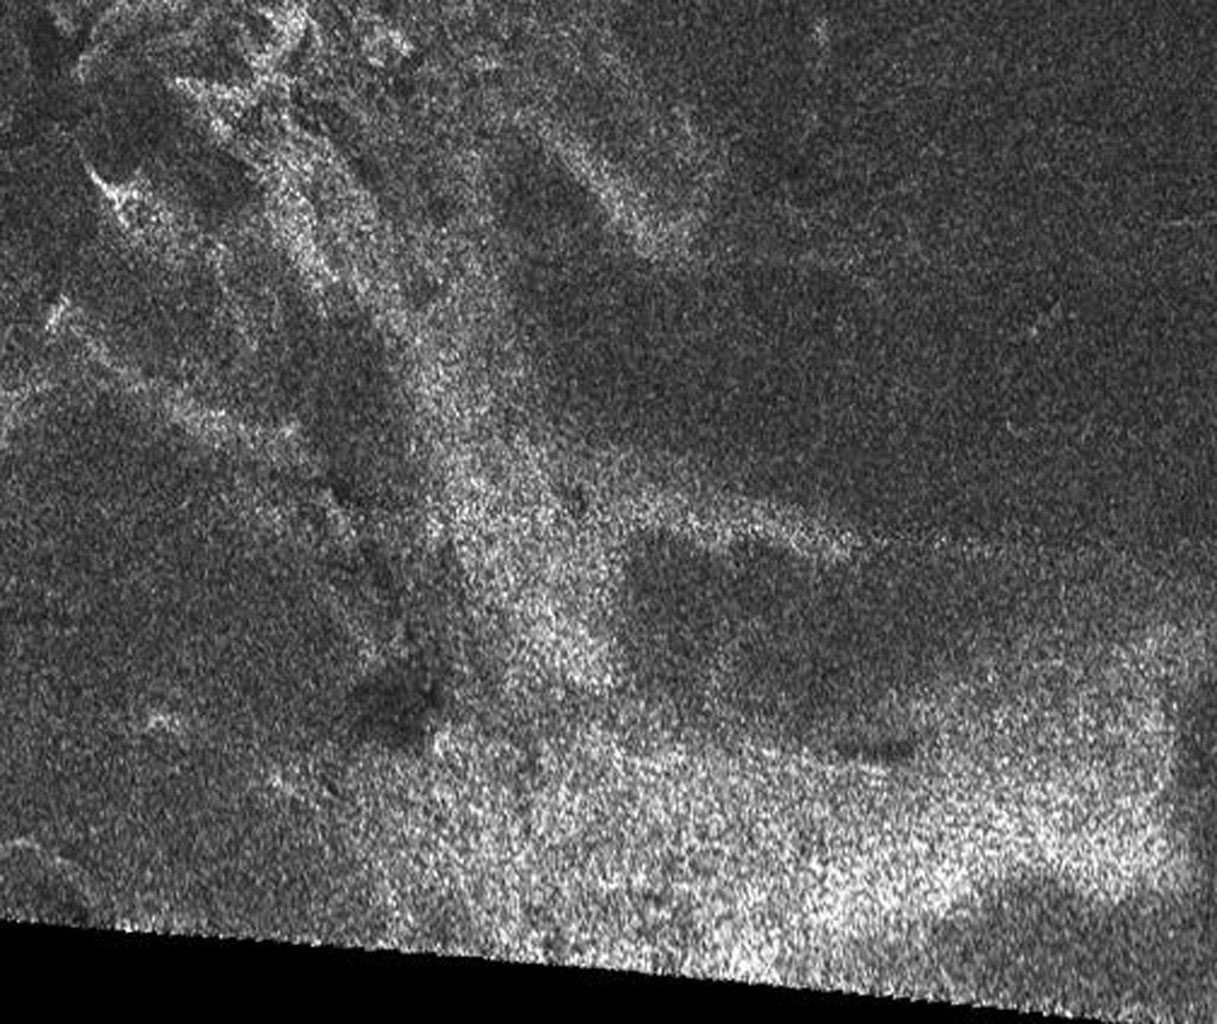 This synthetic aperture radar image of the surface of Saturn's moon Titan was acquired on Oct. 26, 2004, when NASA's Cassini spacecraft flew over. Dark regions may represent areas that are smooth, made of radar-absorbing materials.